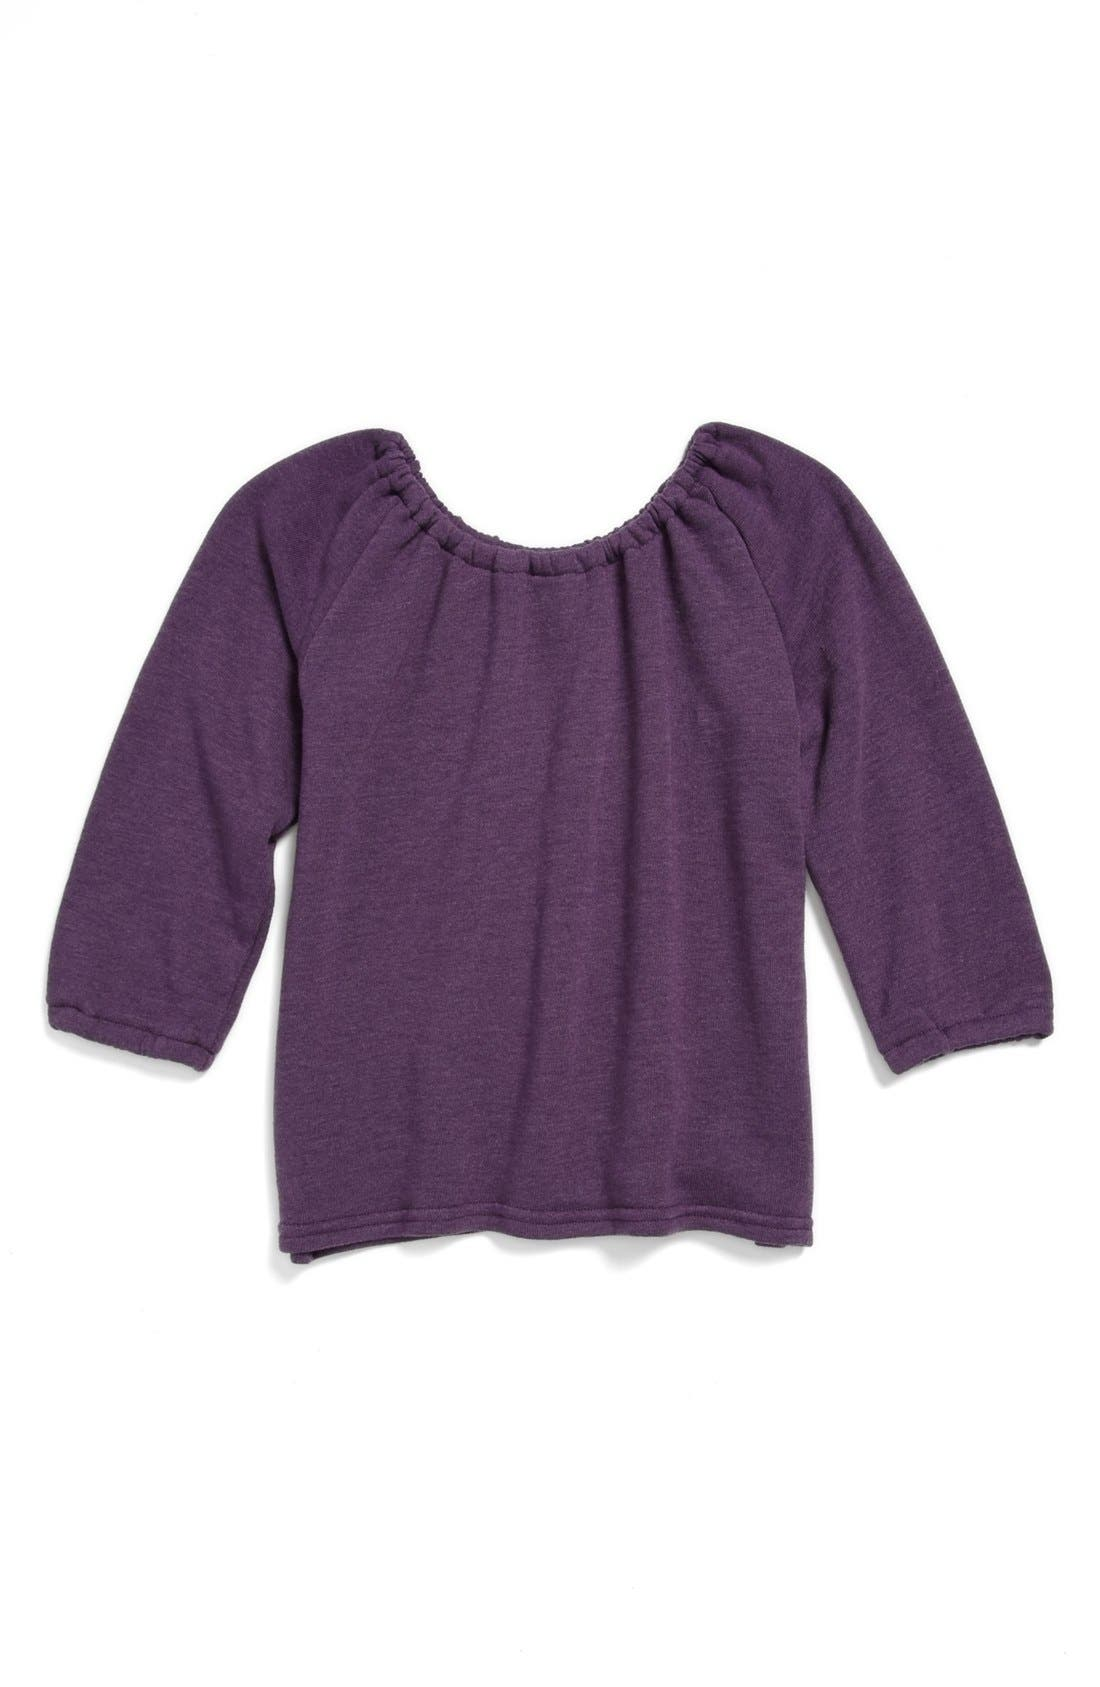 Alternate Image 1 Selected - Peek 'Helene' Tunic (Toddler Girls, Little Girls & Big Girls)